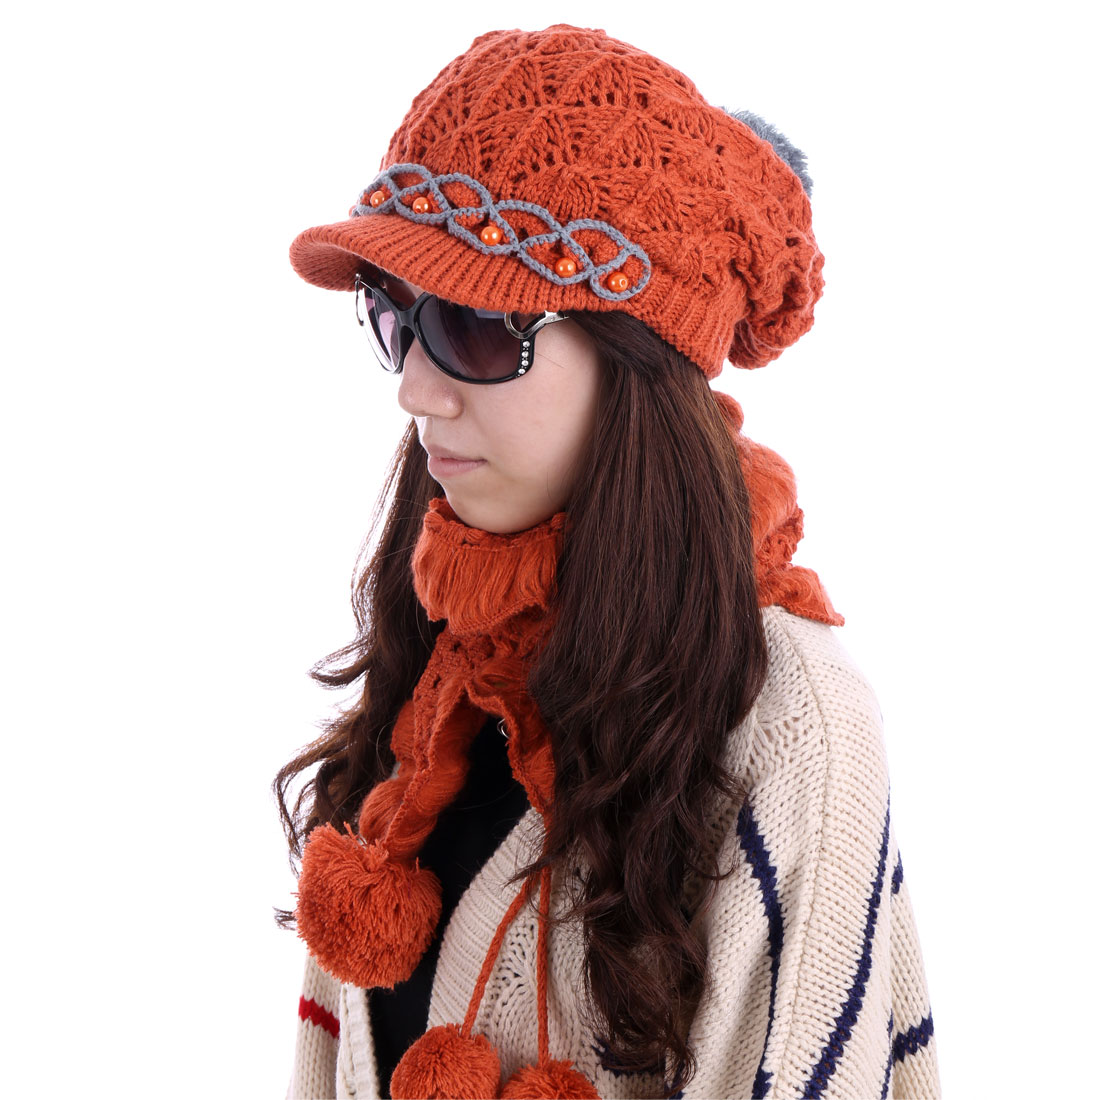 Women Beads Winter Wearing Hat & Ruffled Scarf Brick Red